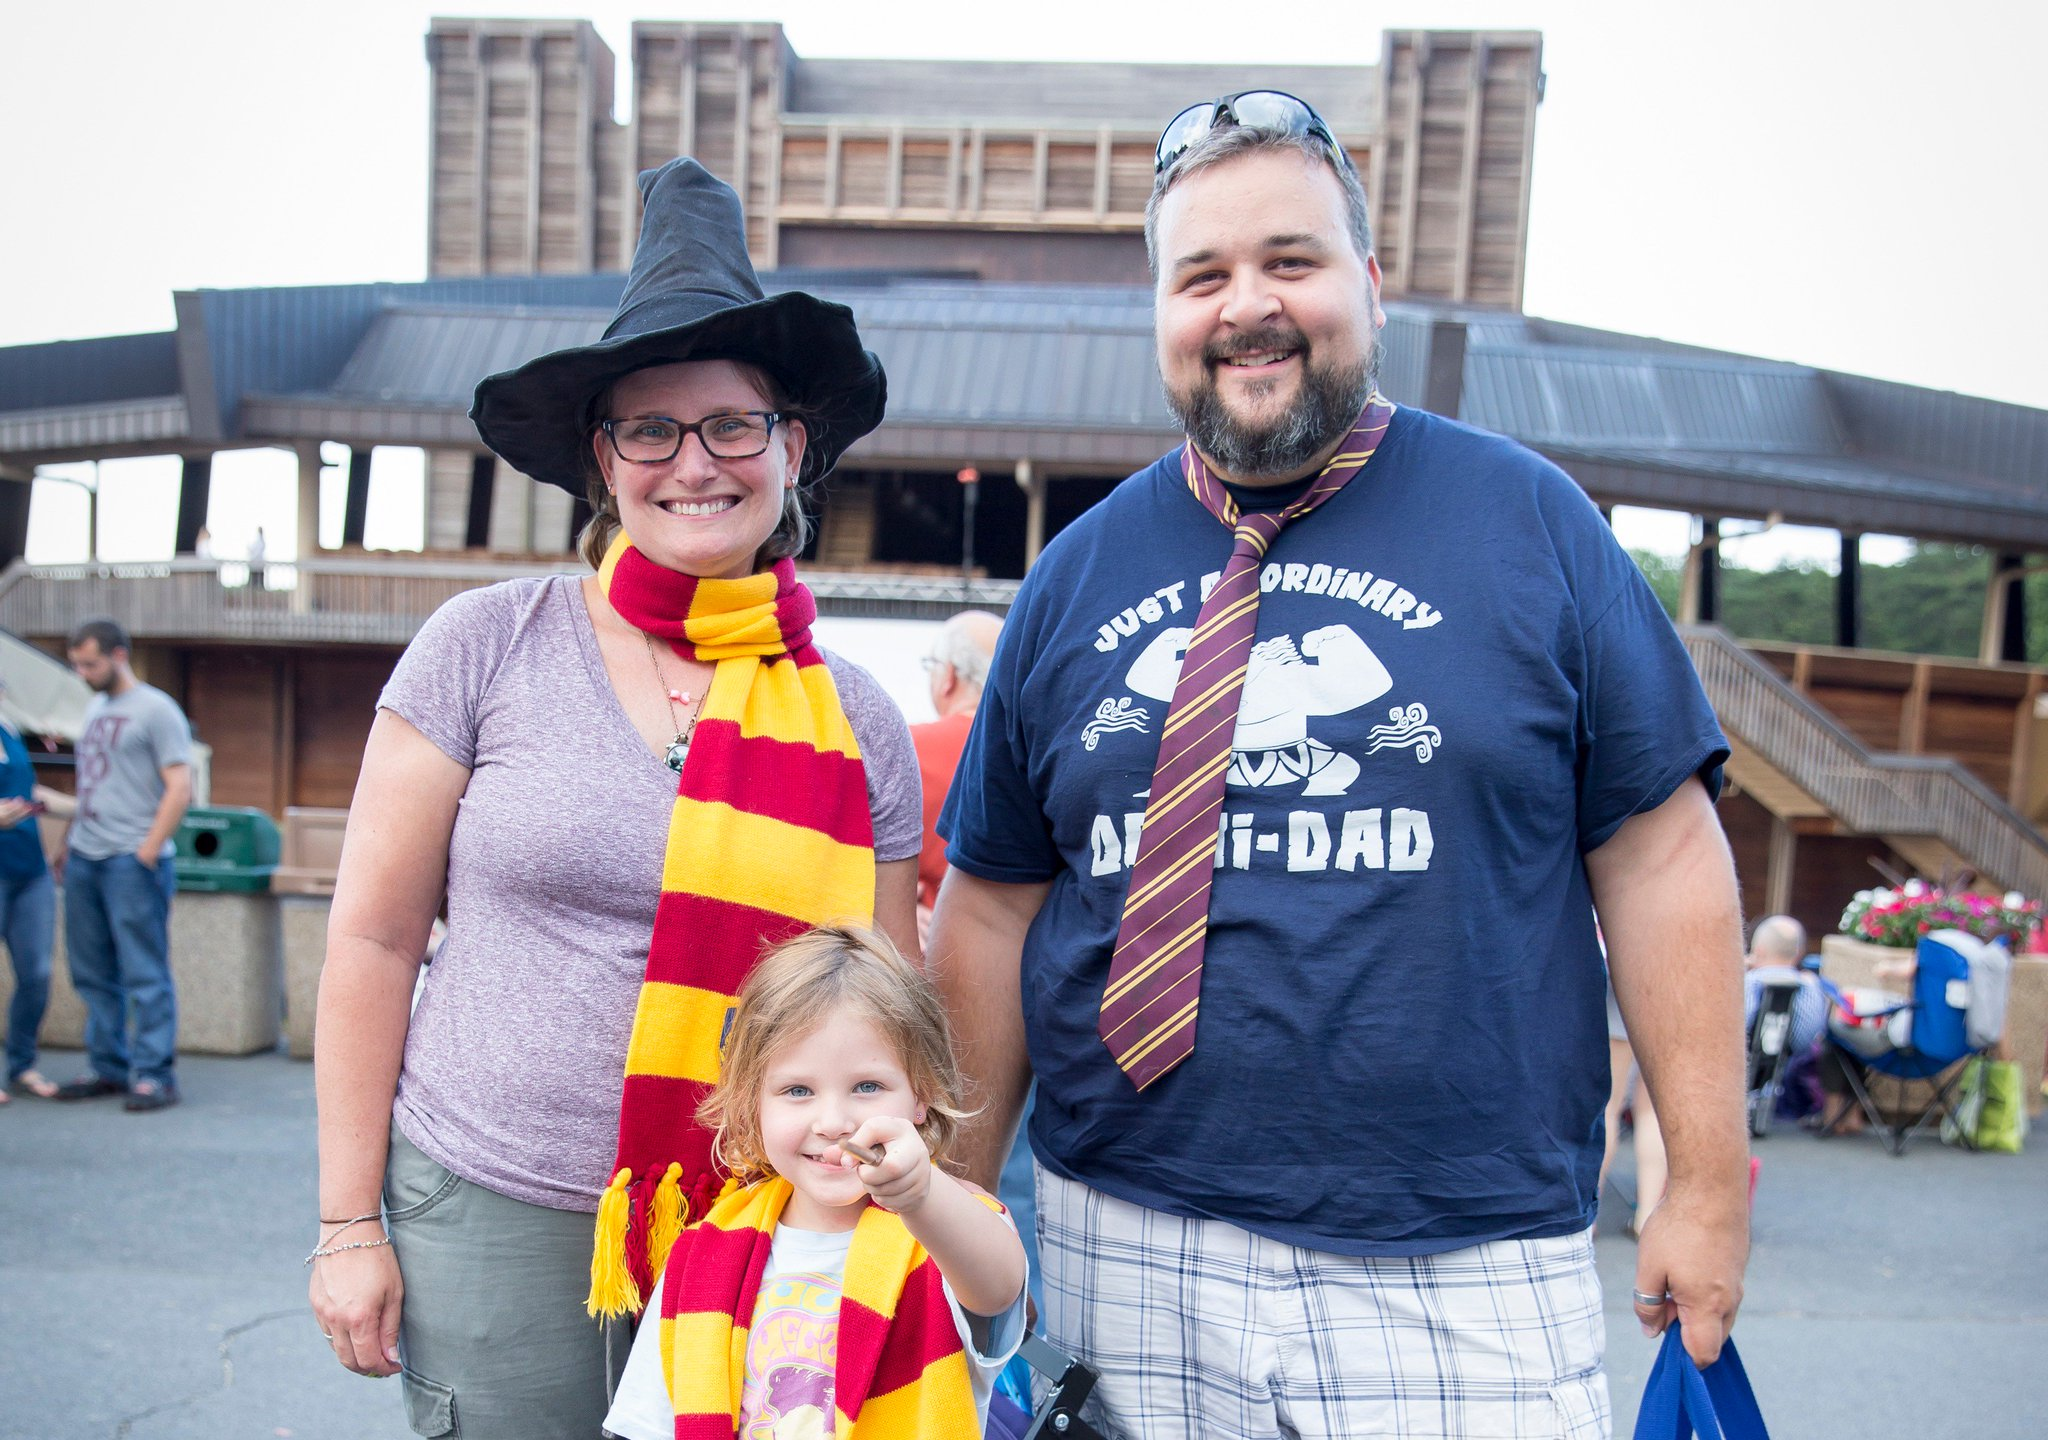 Reloaded twaddle – RT @Wolf_Trap: Skip the tie for #FathersDay and take Dad to #WolfTrap instead! R...